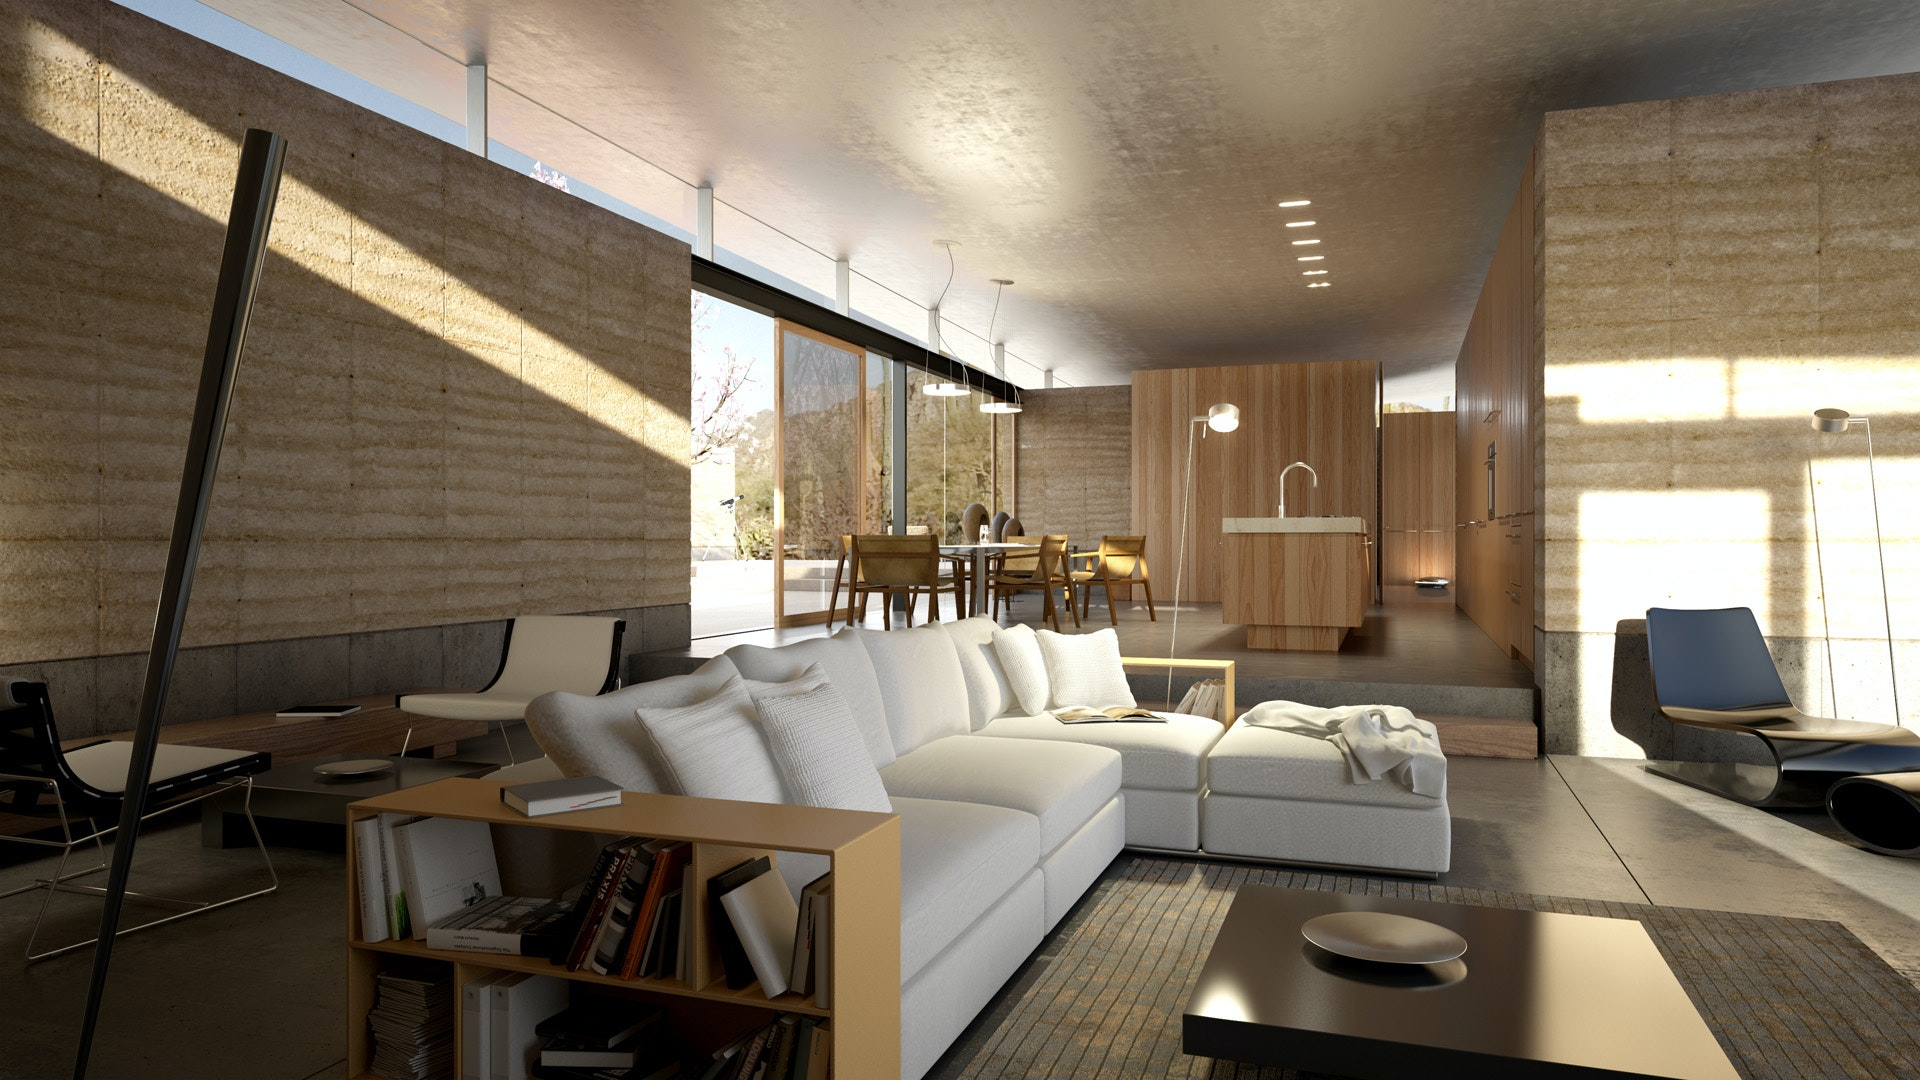 Avra verde house design